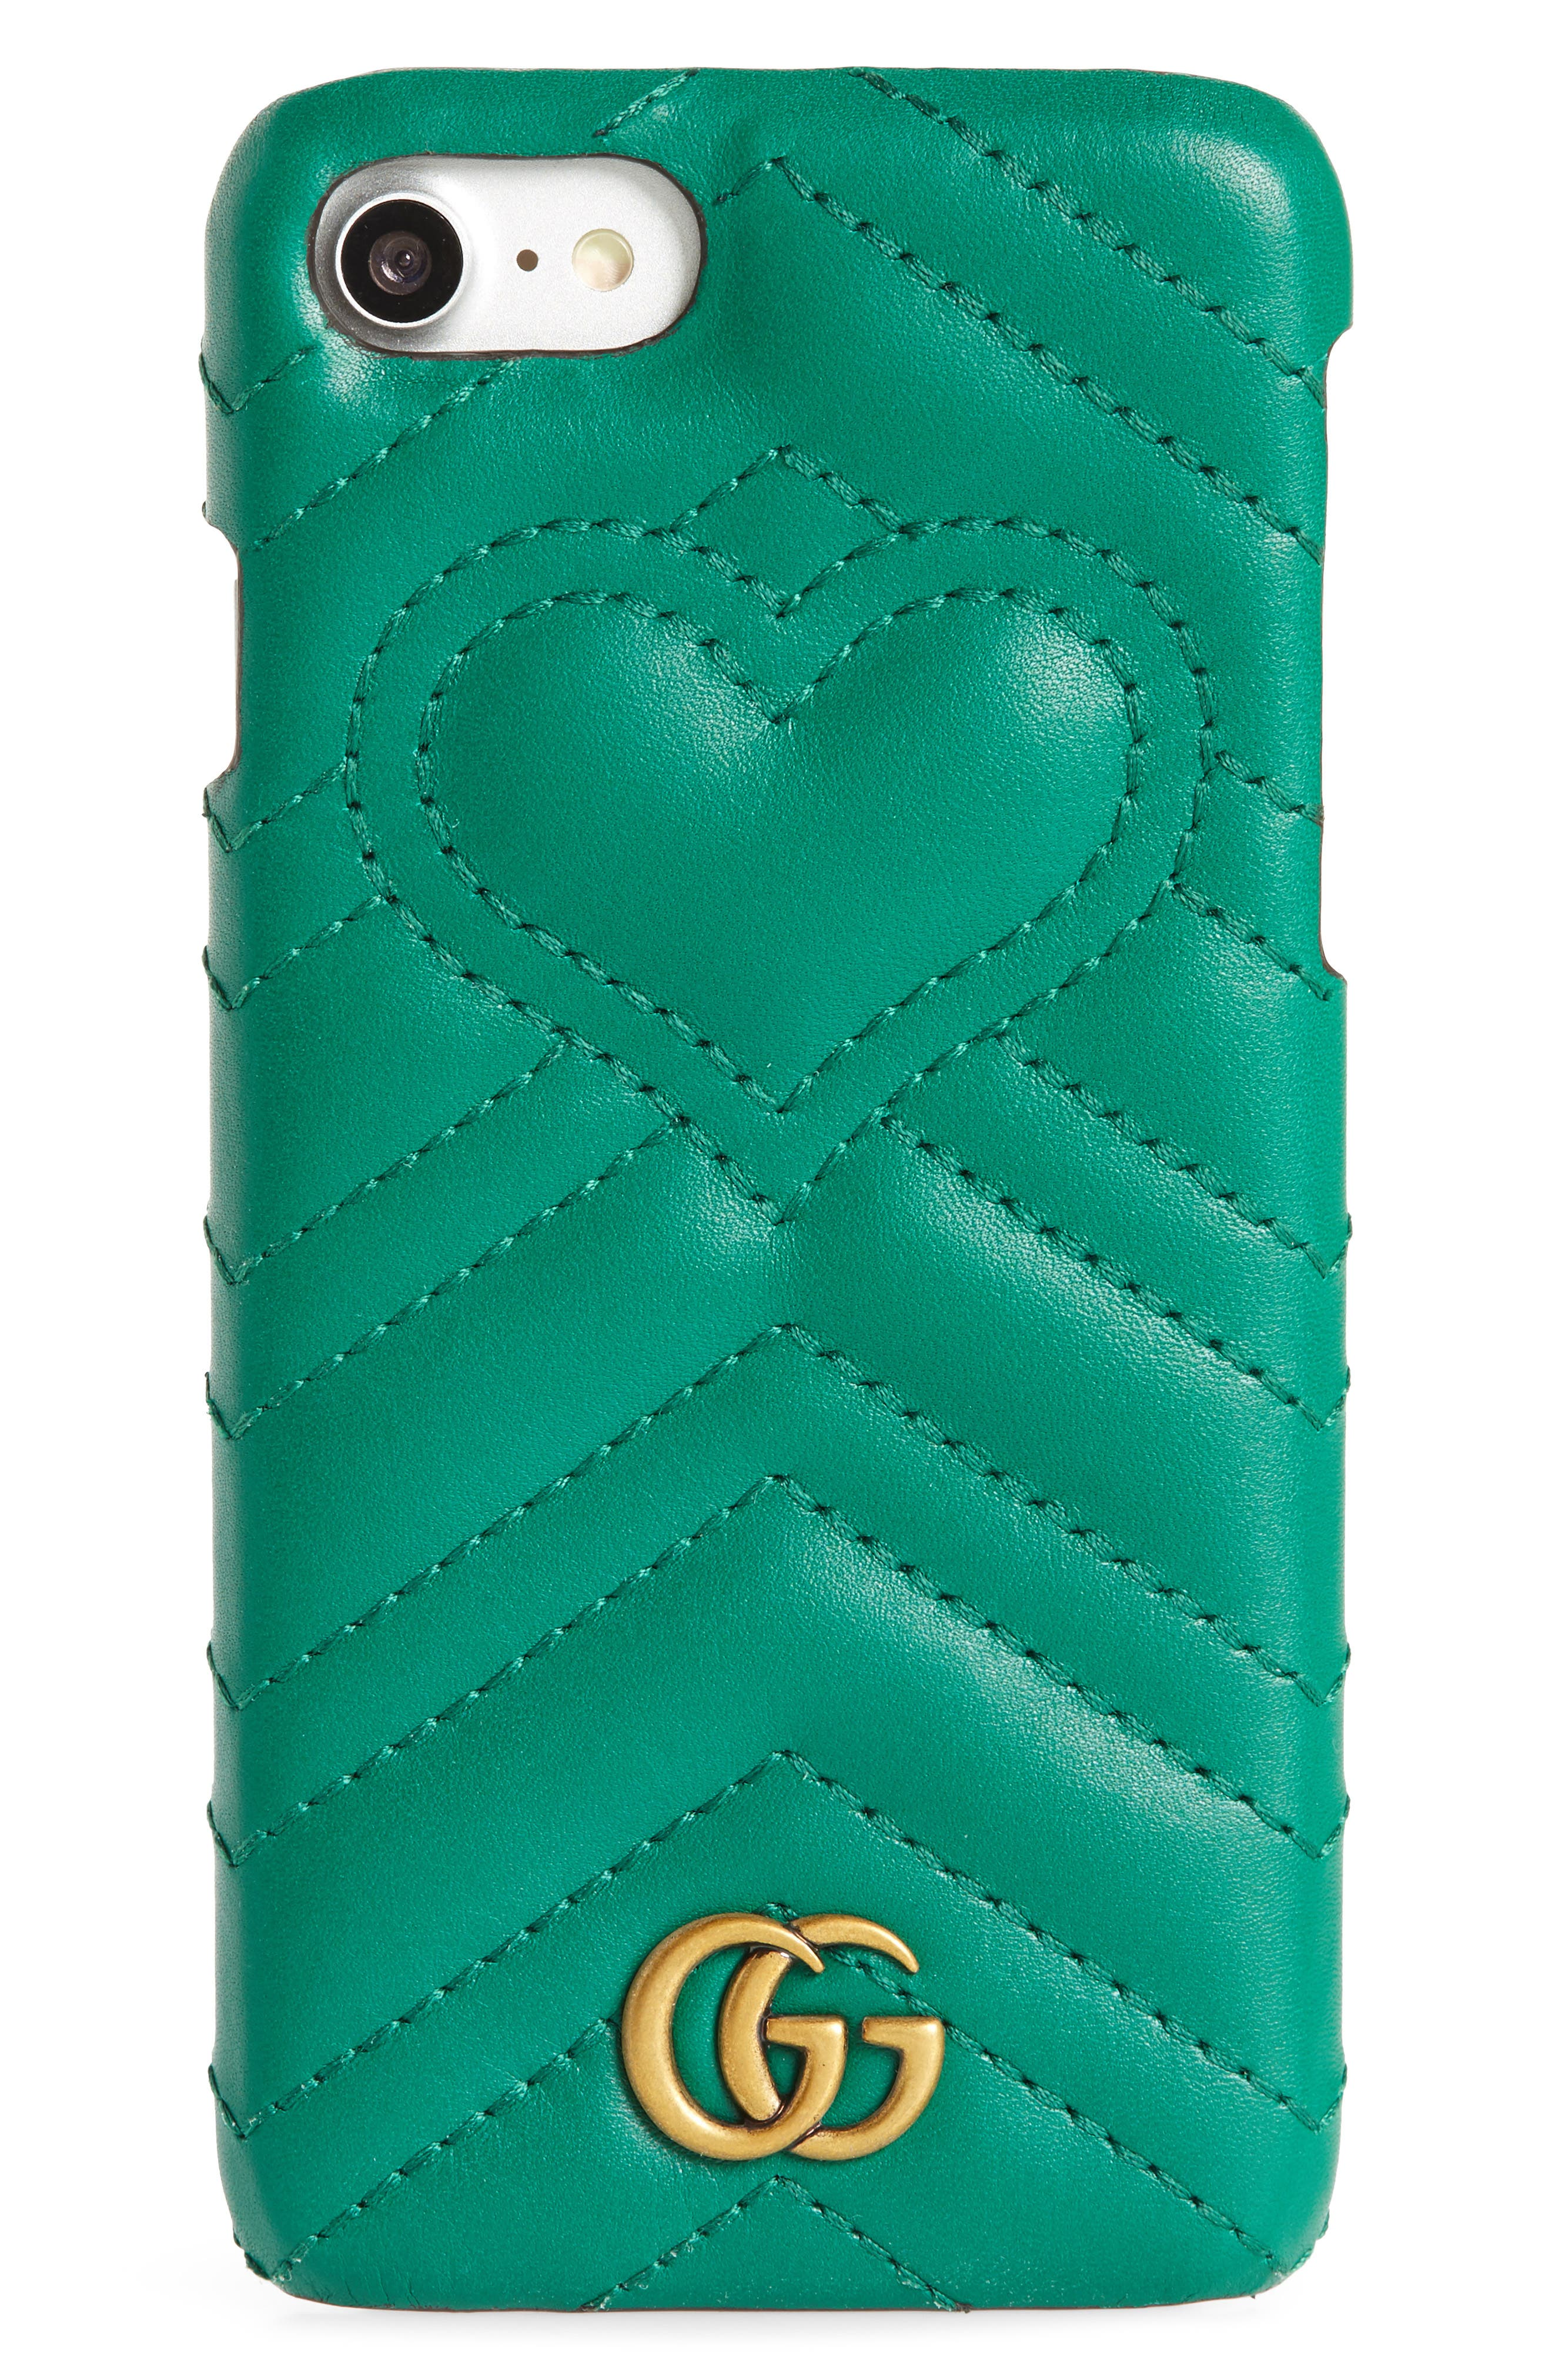 GG Marmont Leather iPhone 7 Case,                             Main thumbnail 1, color,                             EMERALD